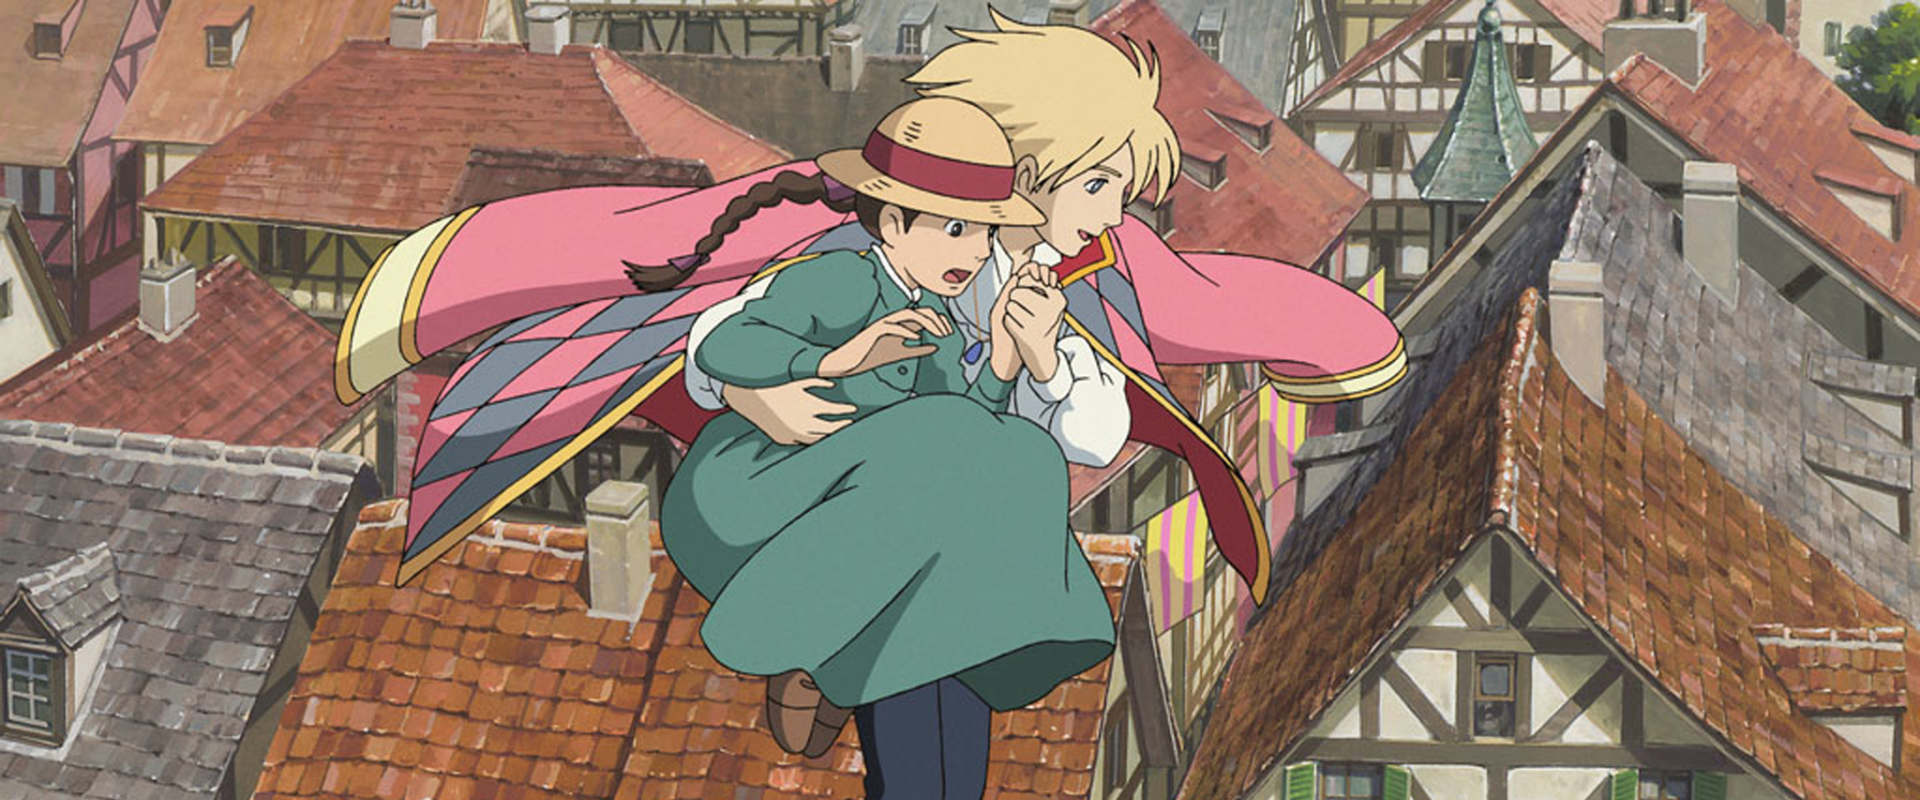 Howl's Moving Castle background 2